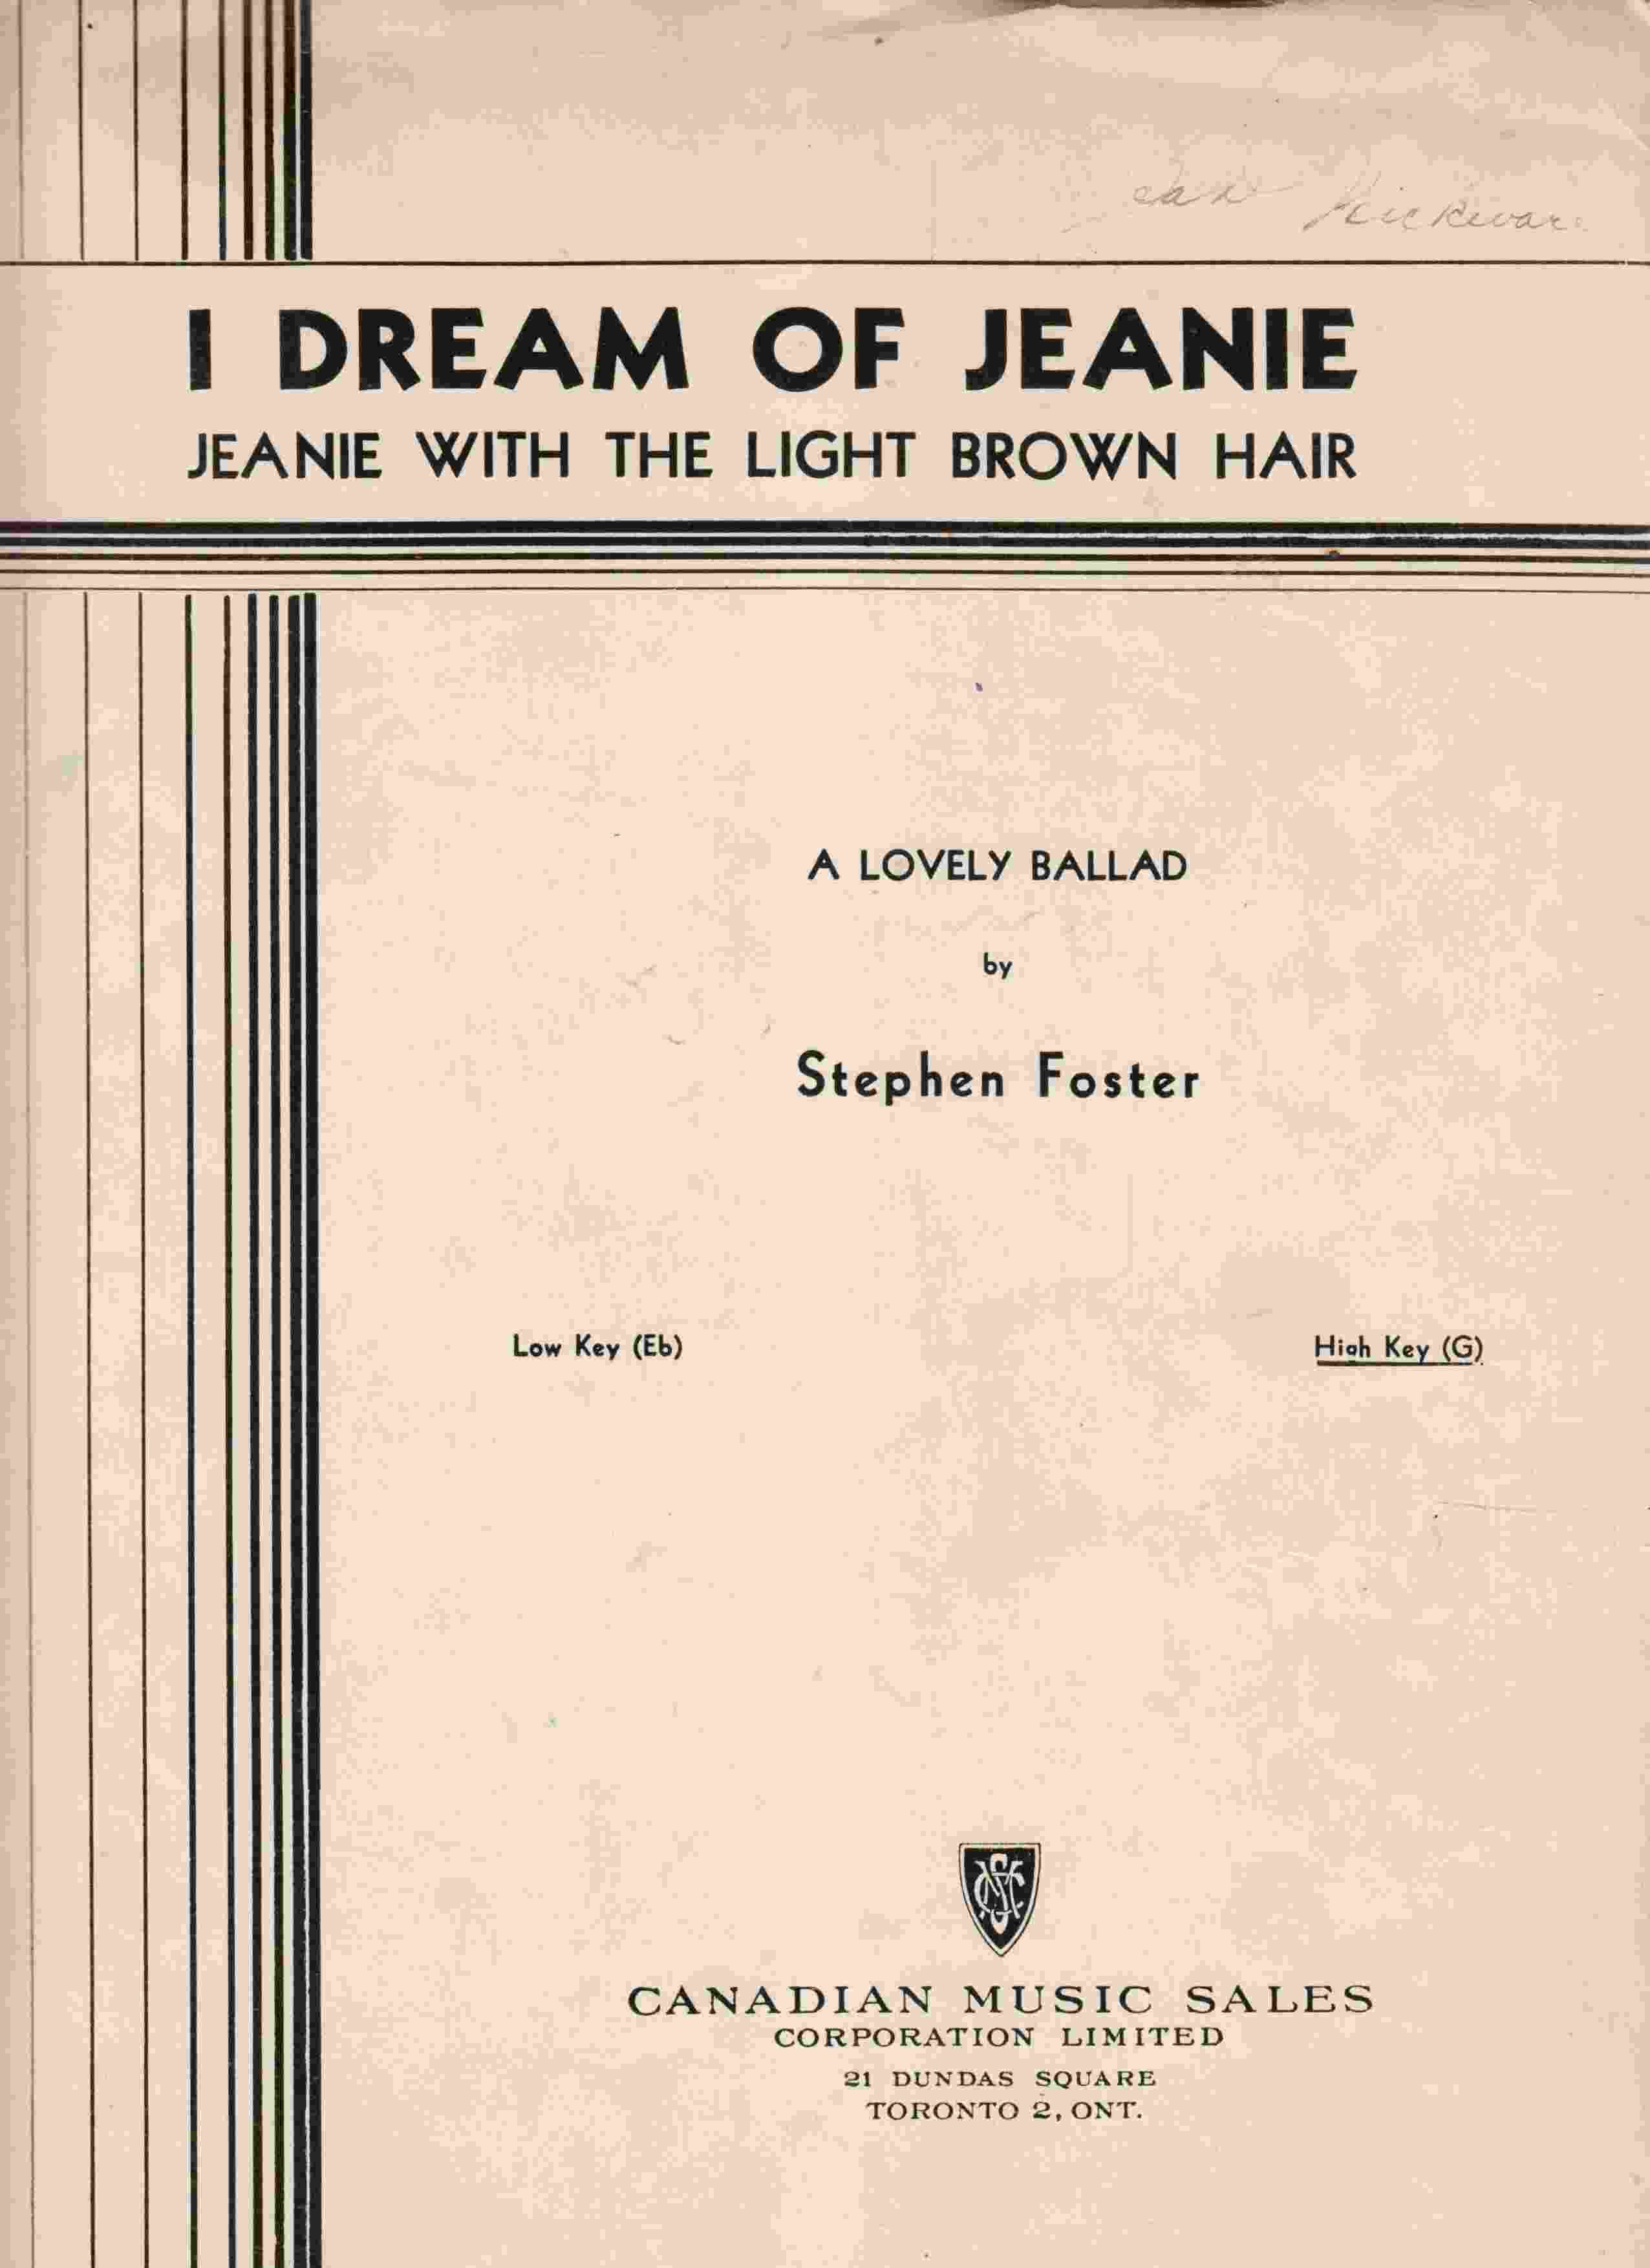 I Dream of Jeanie with the Light Brown Hair